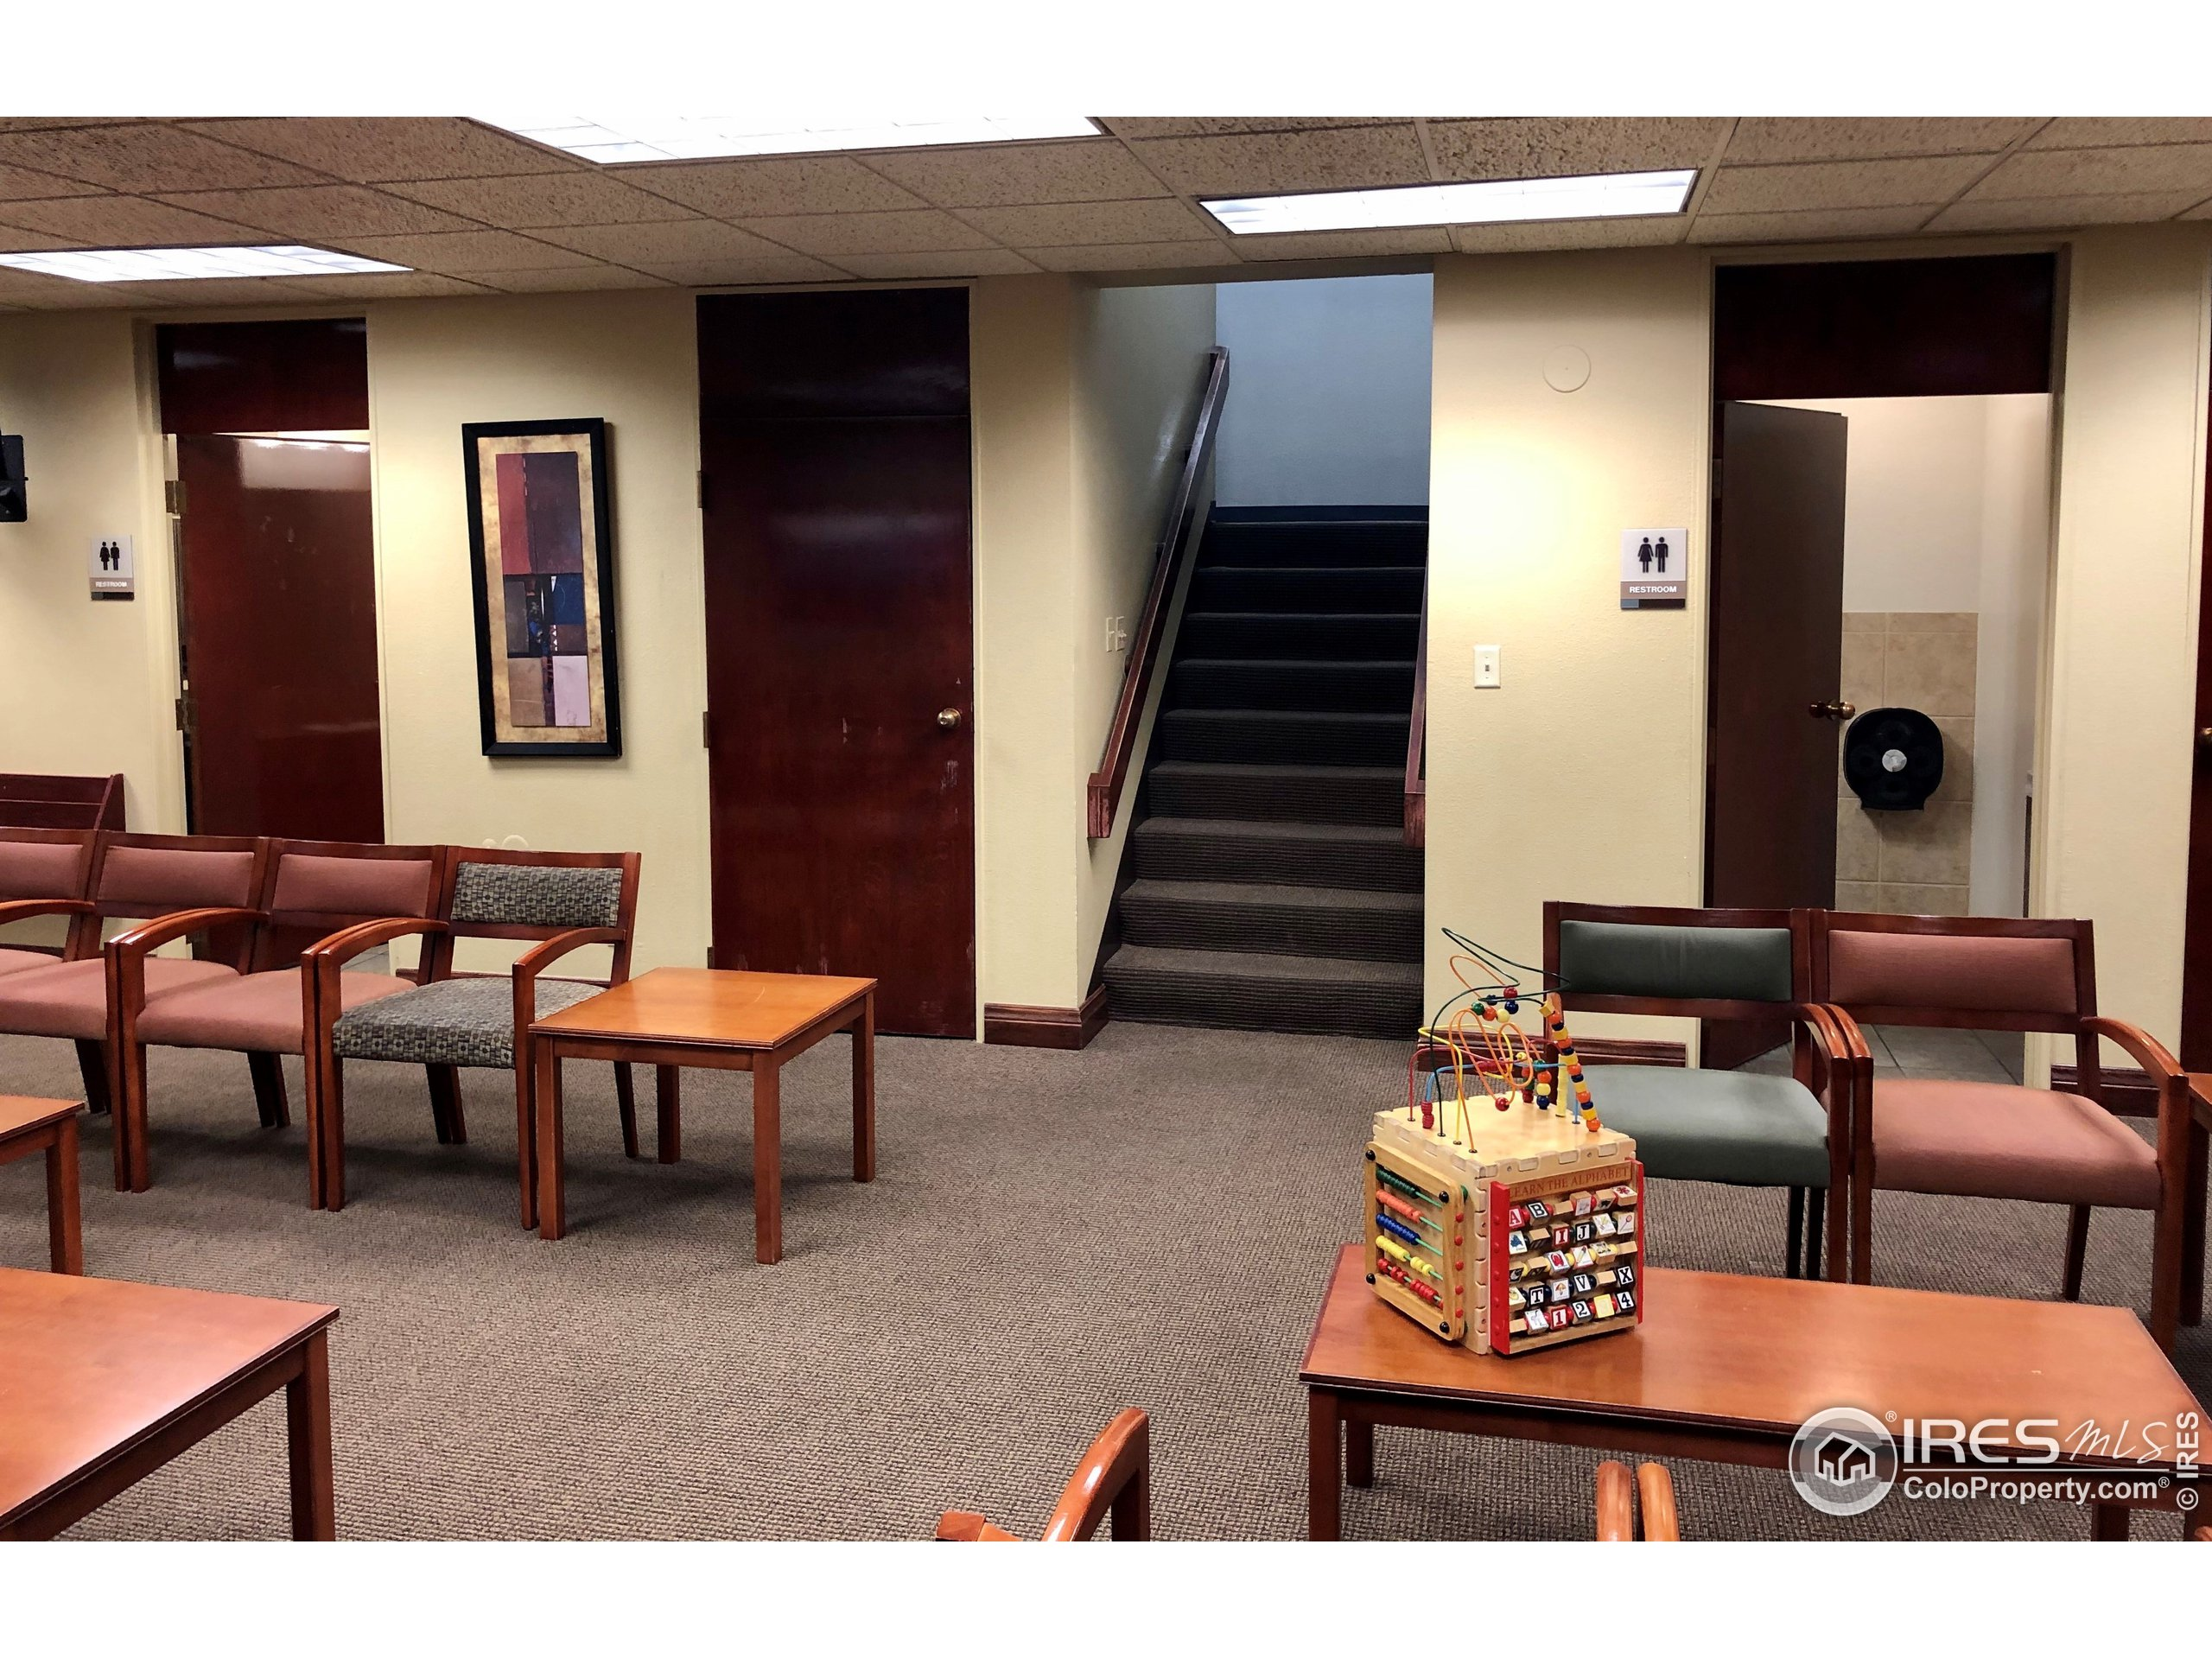 common area waiting room/restrooms